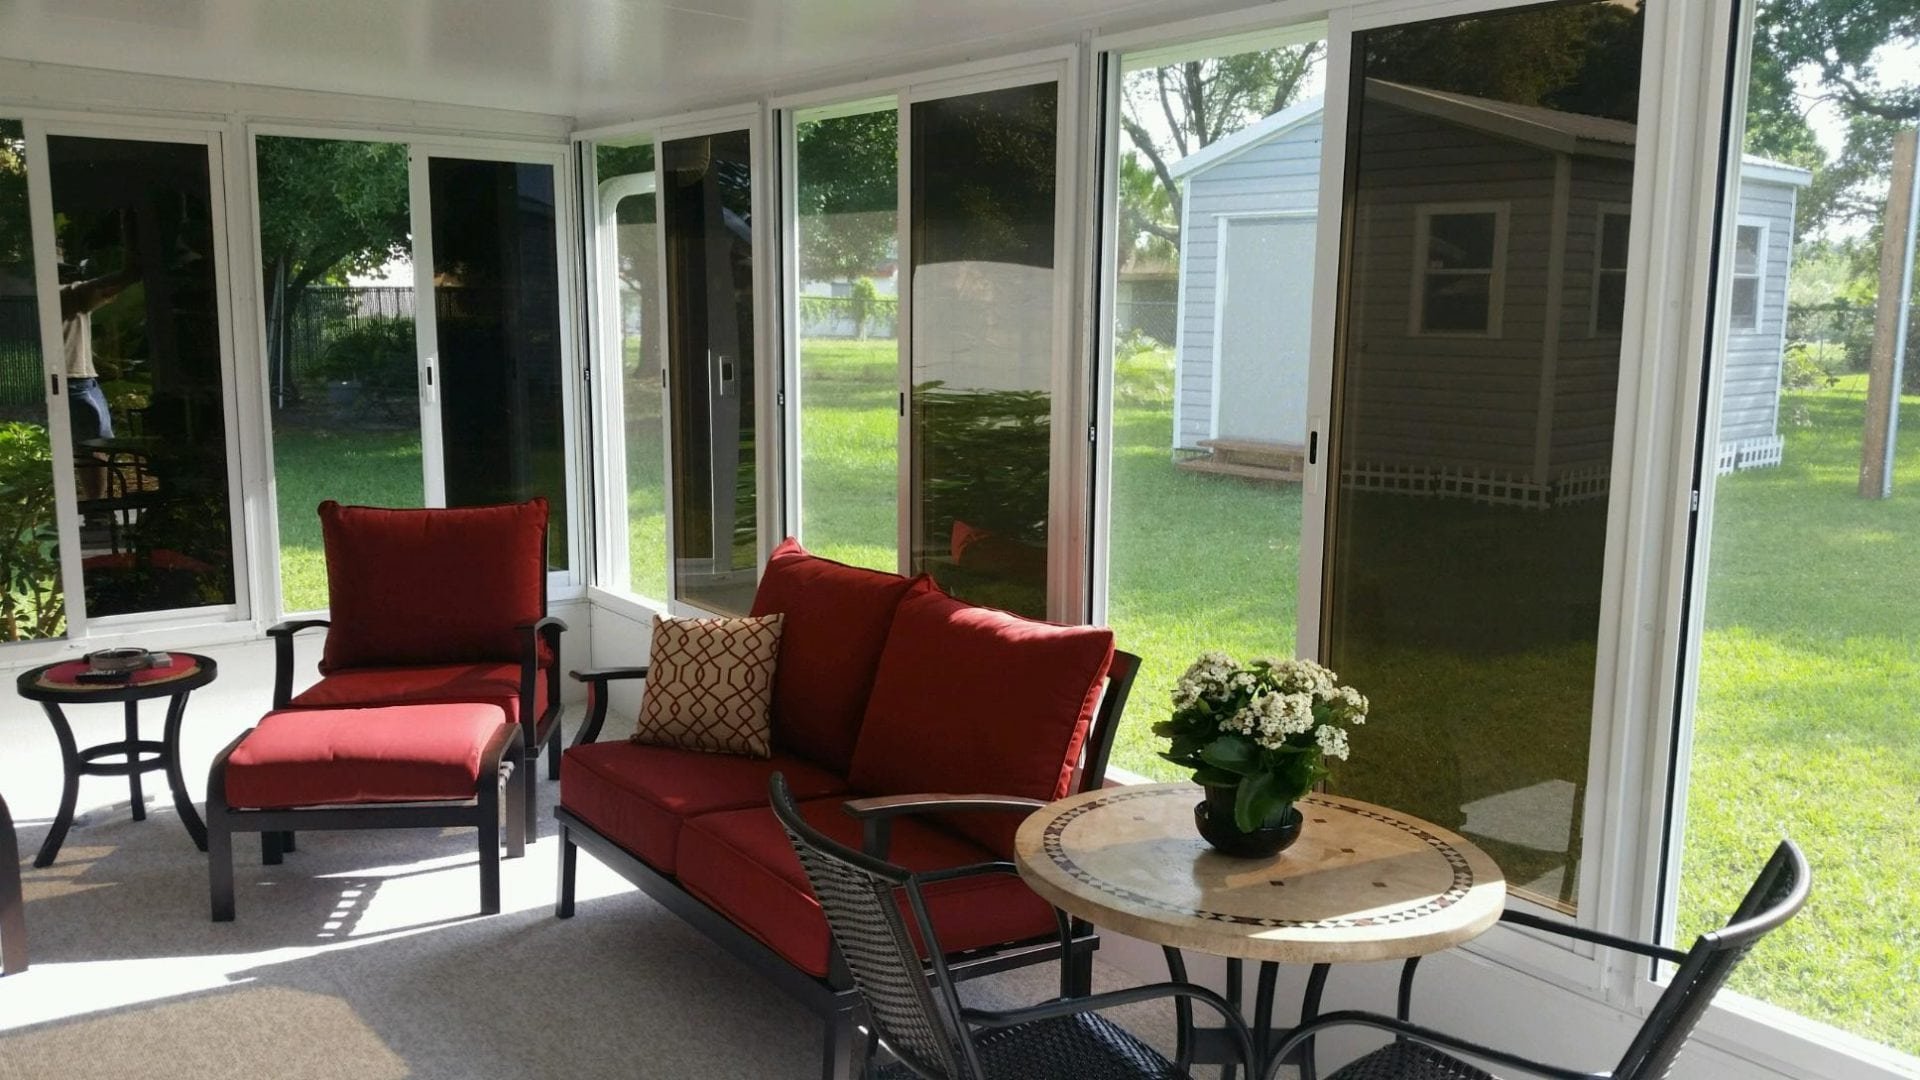 Sunrooms projects at affordable prices